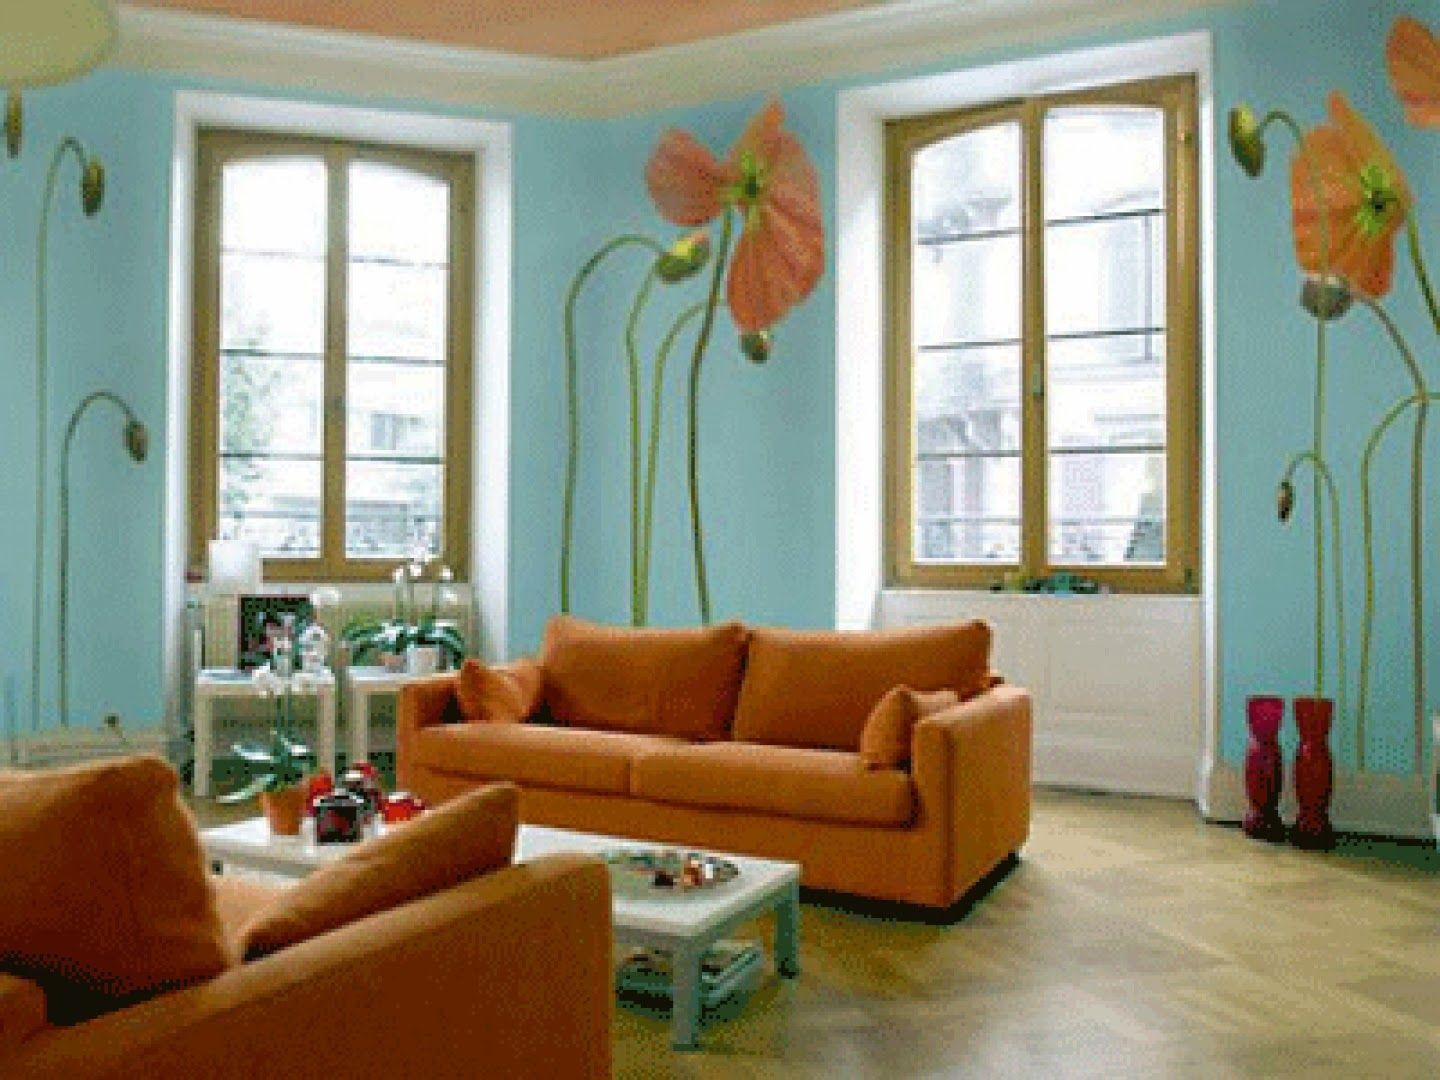 Interior awesome living room decoration with light blue asian paint wall colors along with